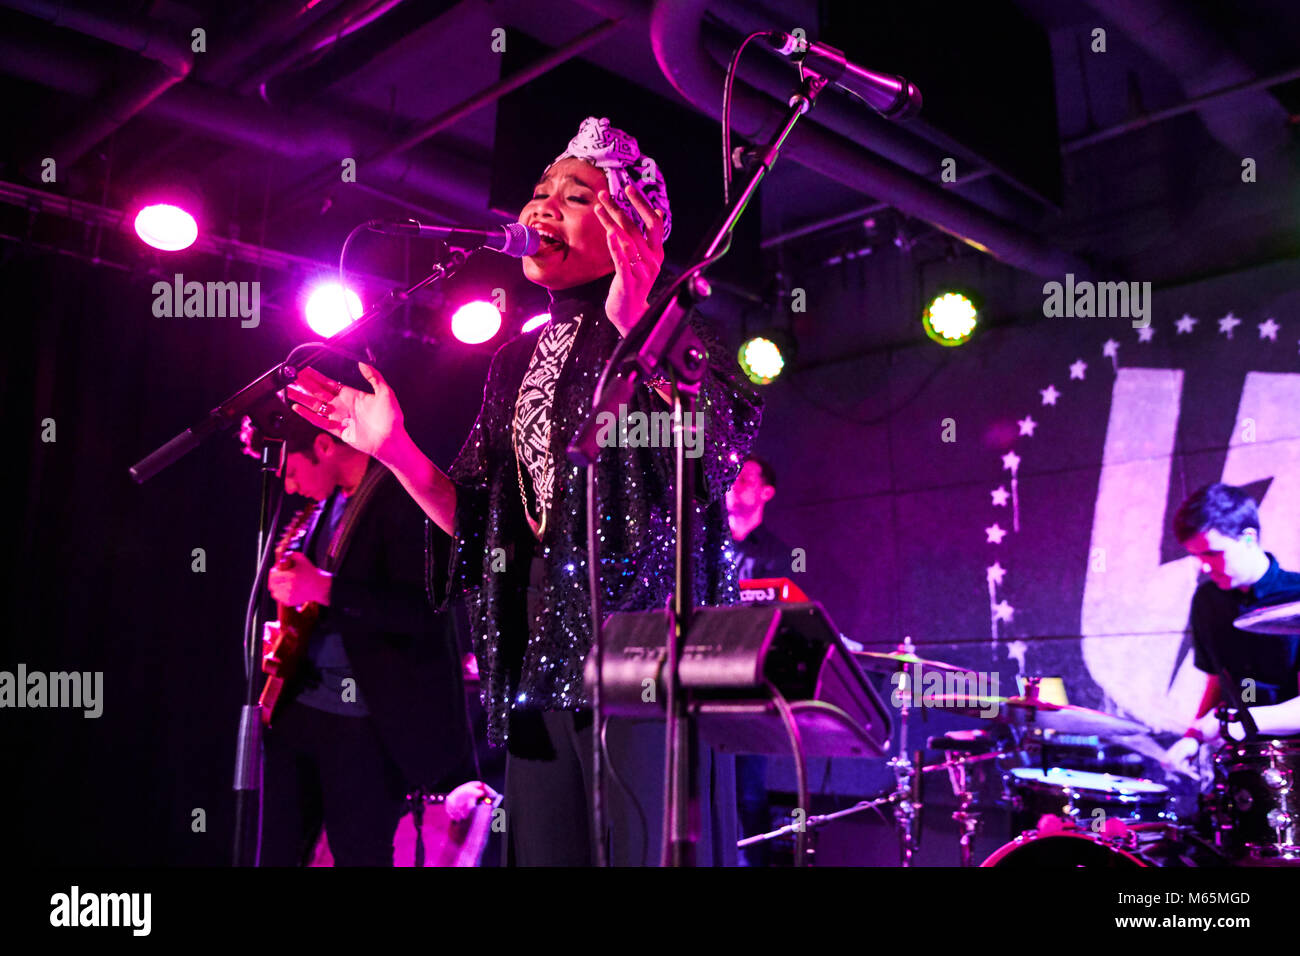 Yuna High Resolution Stock Photography and Images - Alamy